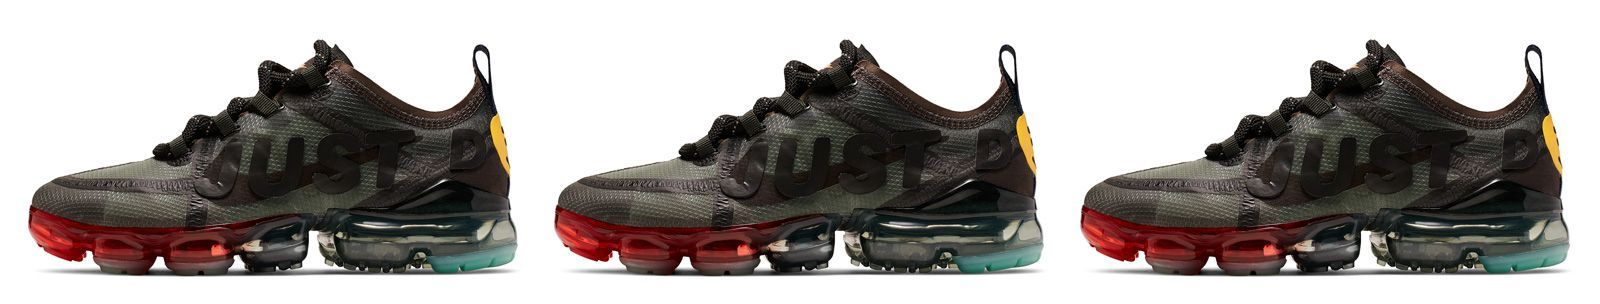 21fb4349df570 CPFM x Nike Air Vapormax 2019 launches Tuesday 14th May at Dover Street  Market Ginza and on DSMG E-FLASH. Raffle registration to enter the selling  space on ...